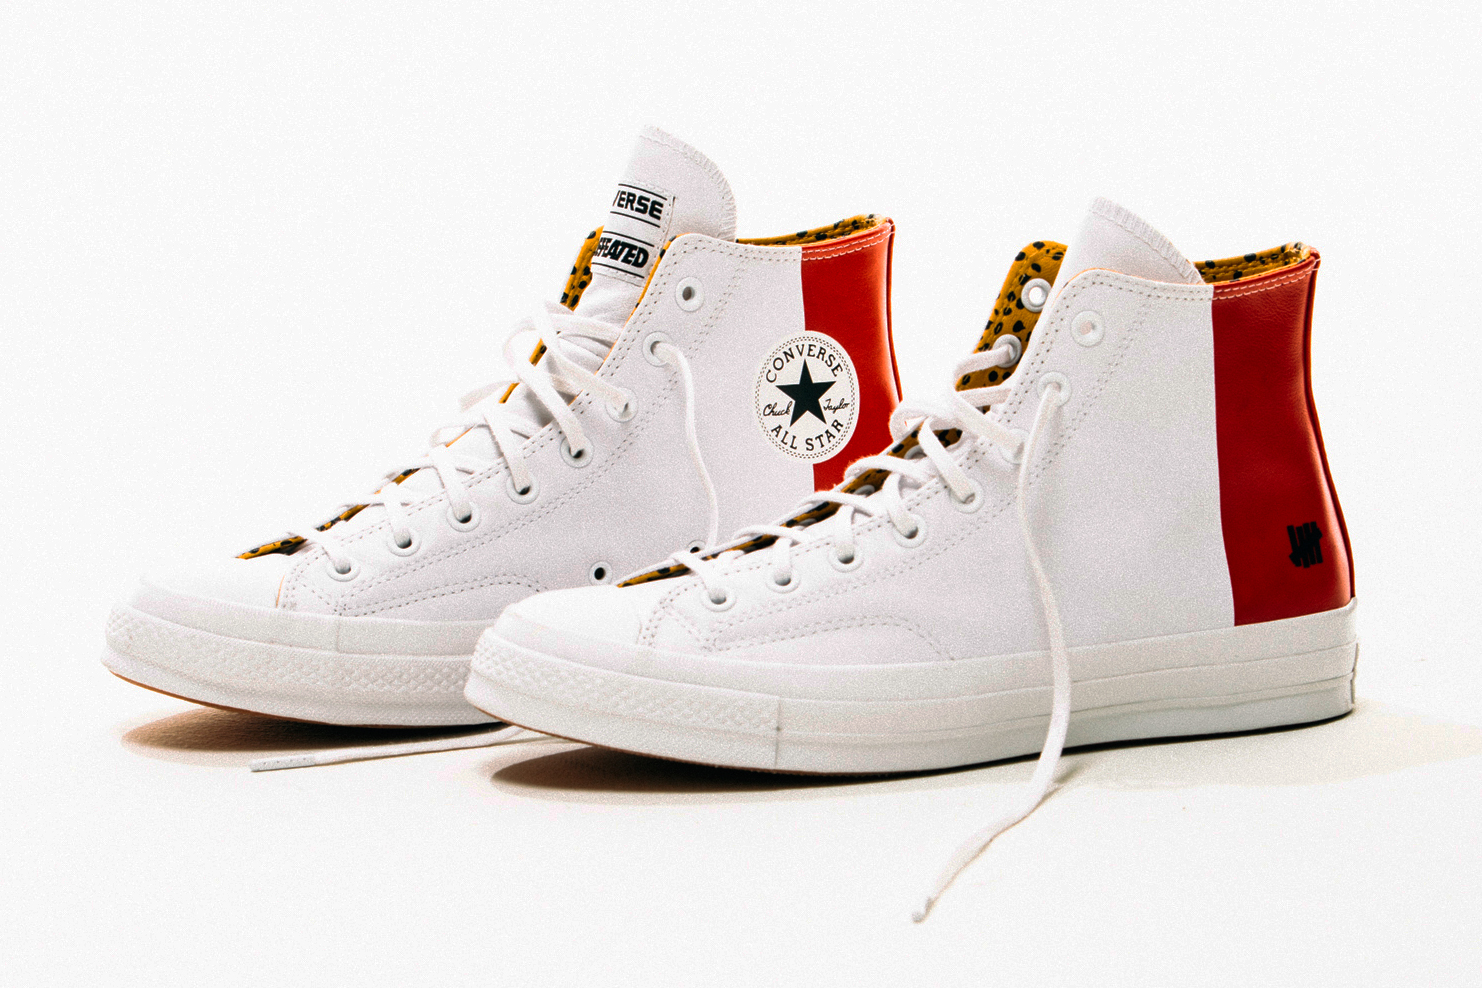 Converse x UNDFTD Chuck Taylor All Star '70 Collection